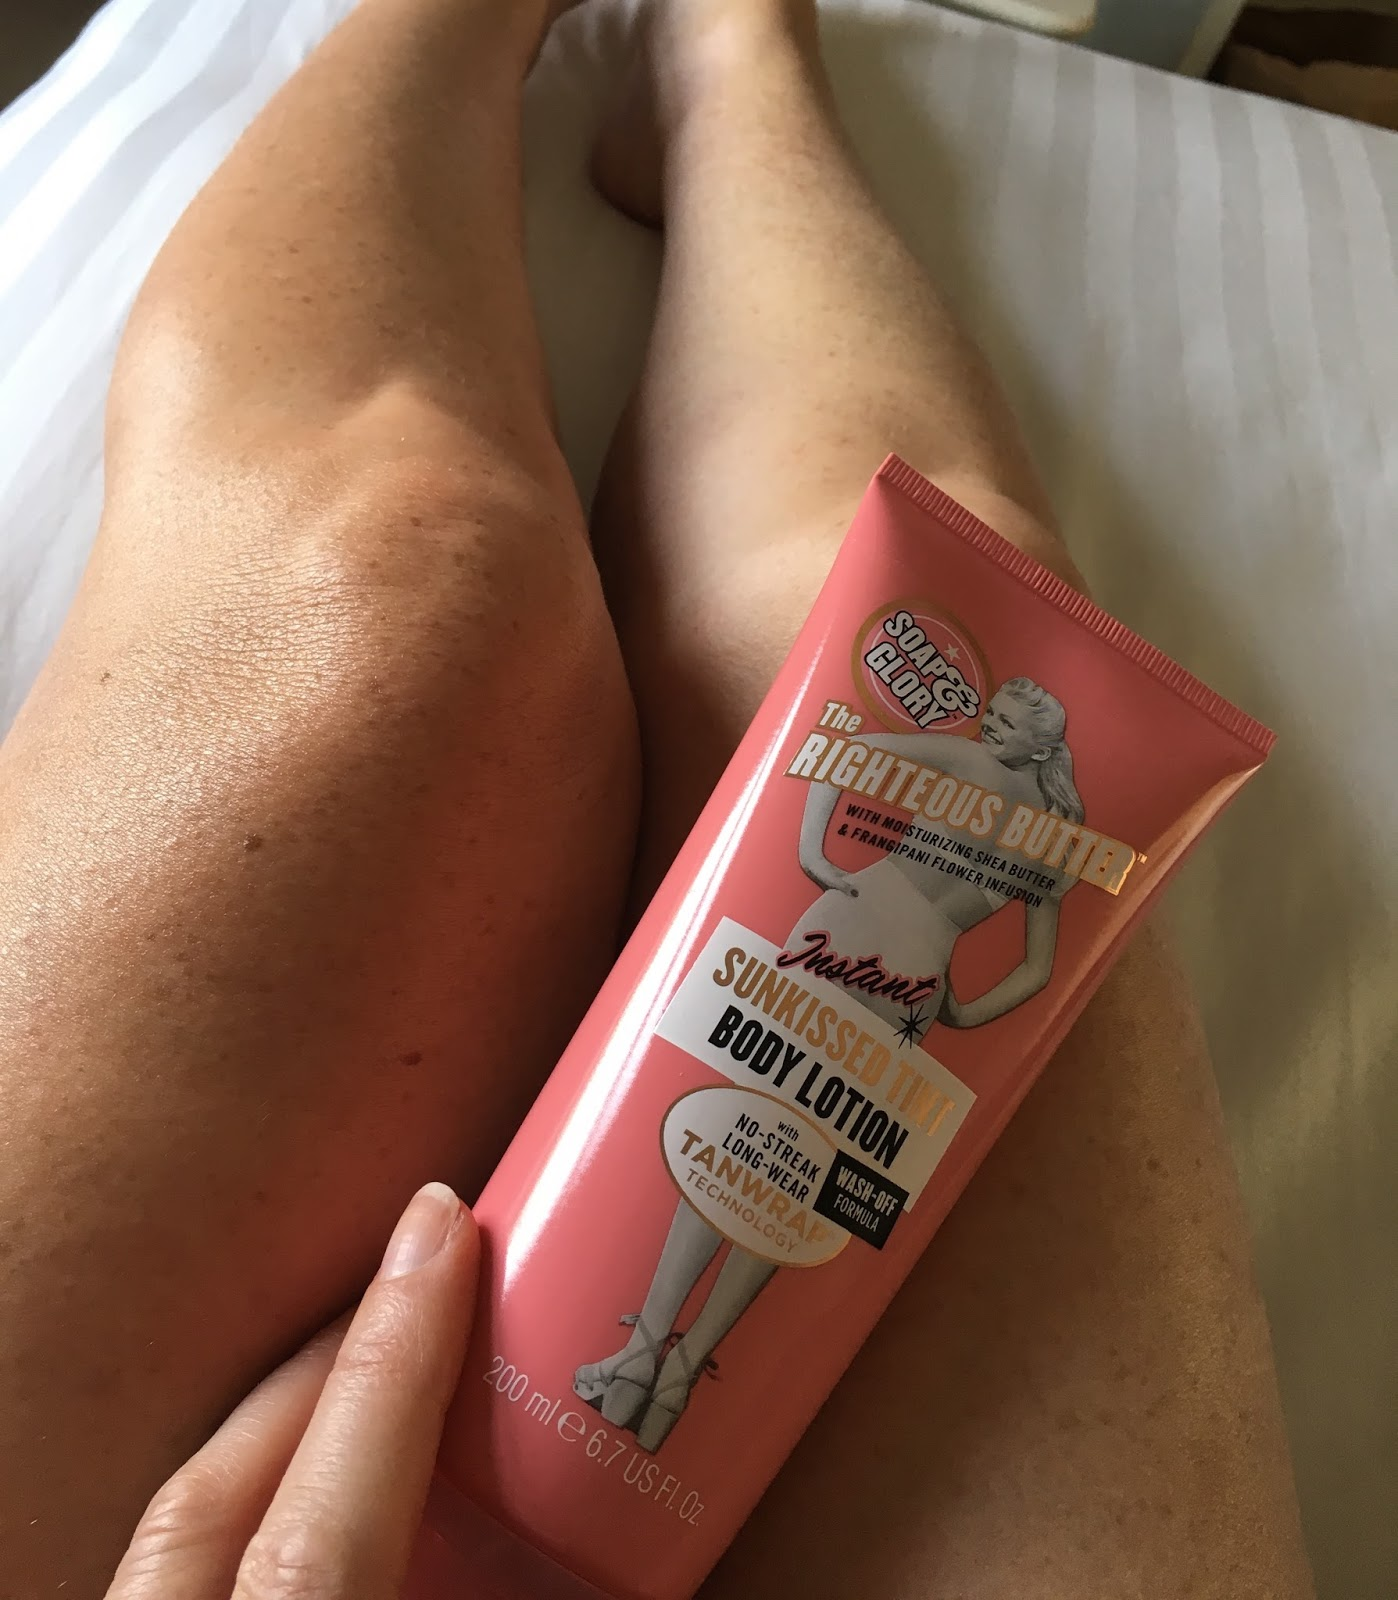 Soap & Glory Righteous butter instant tan body lotion self tan beauty